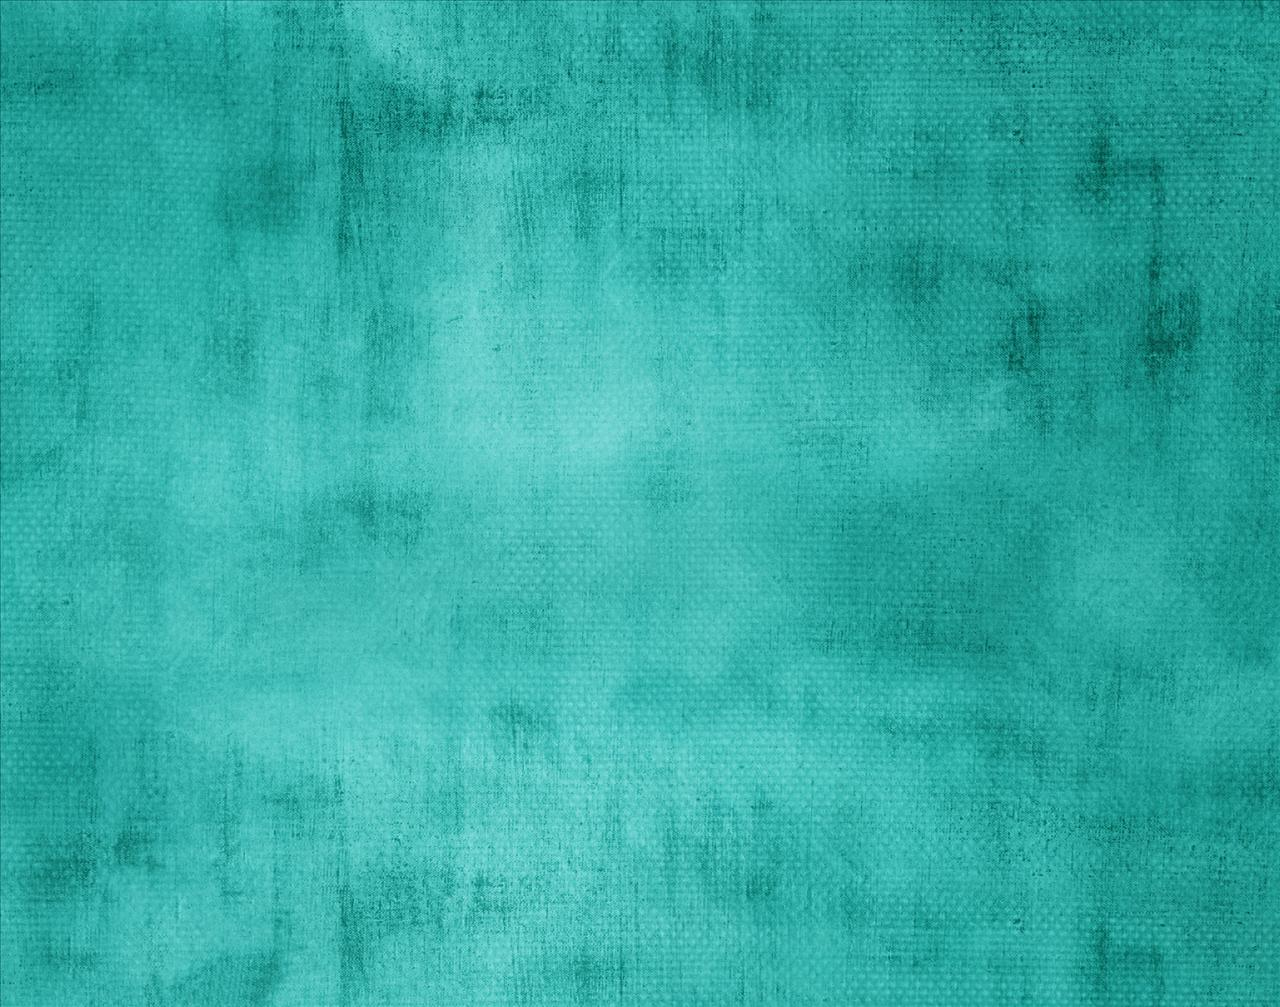 Top Turquoise Black And White Background Images for Pinterest 1280x1007